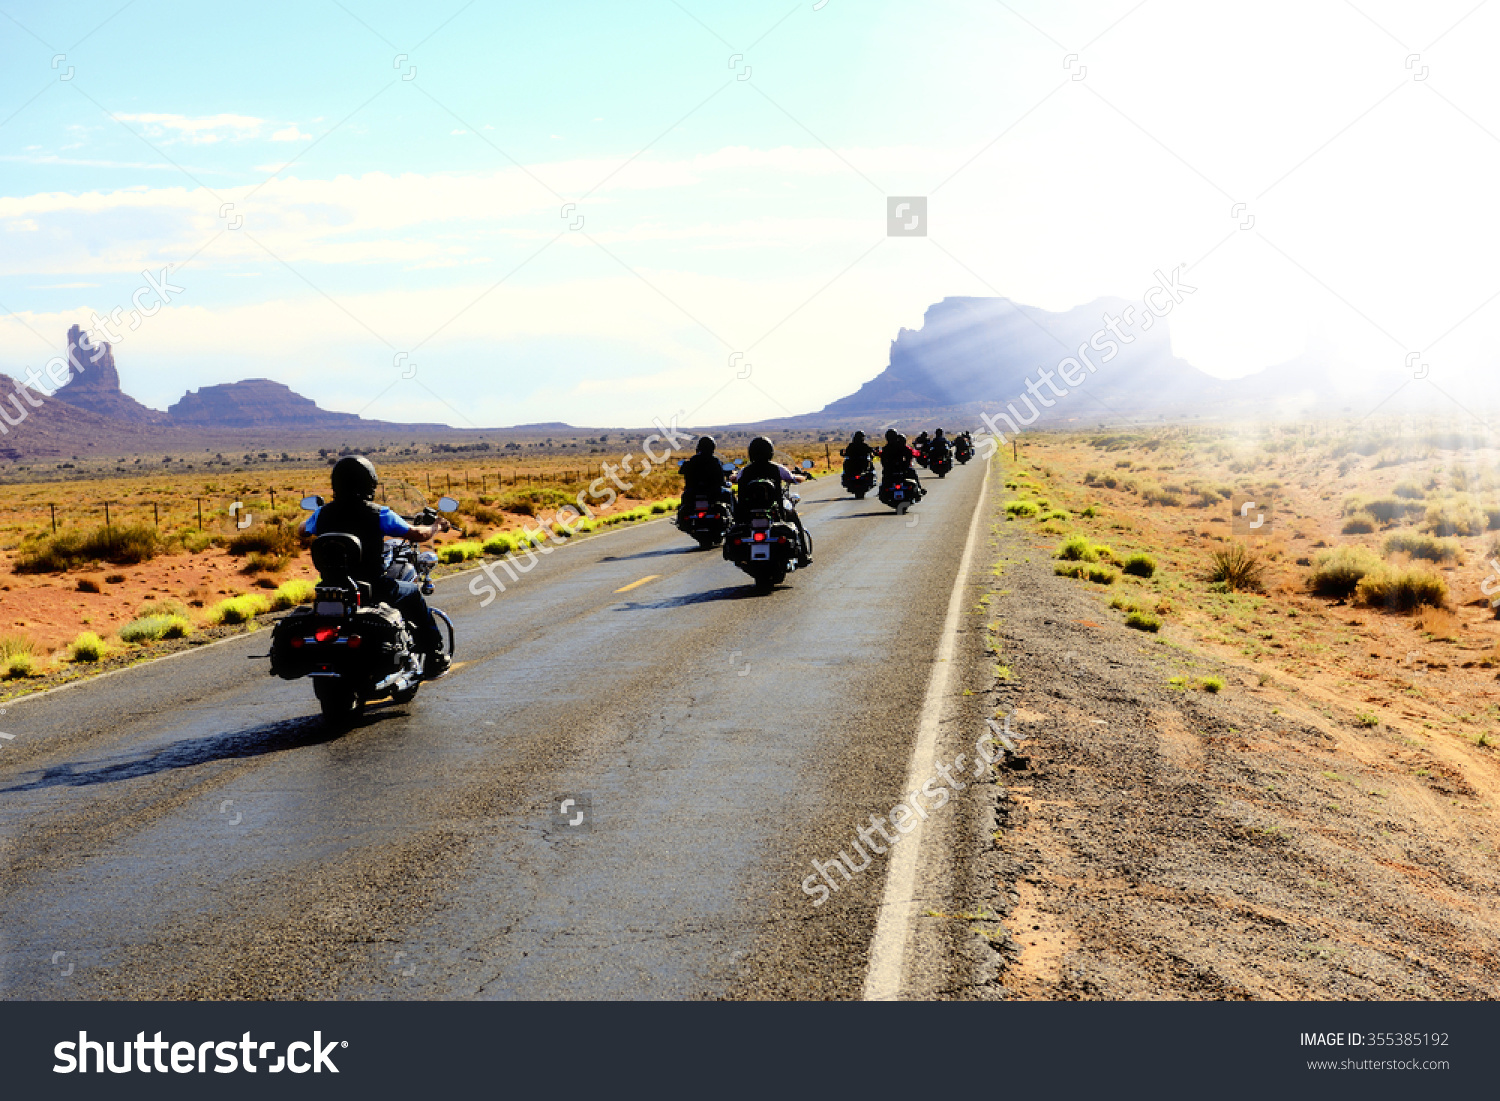 Motorcycle ride photo